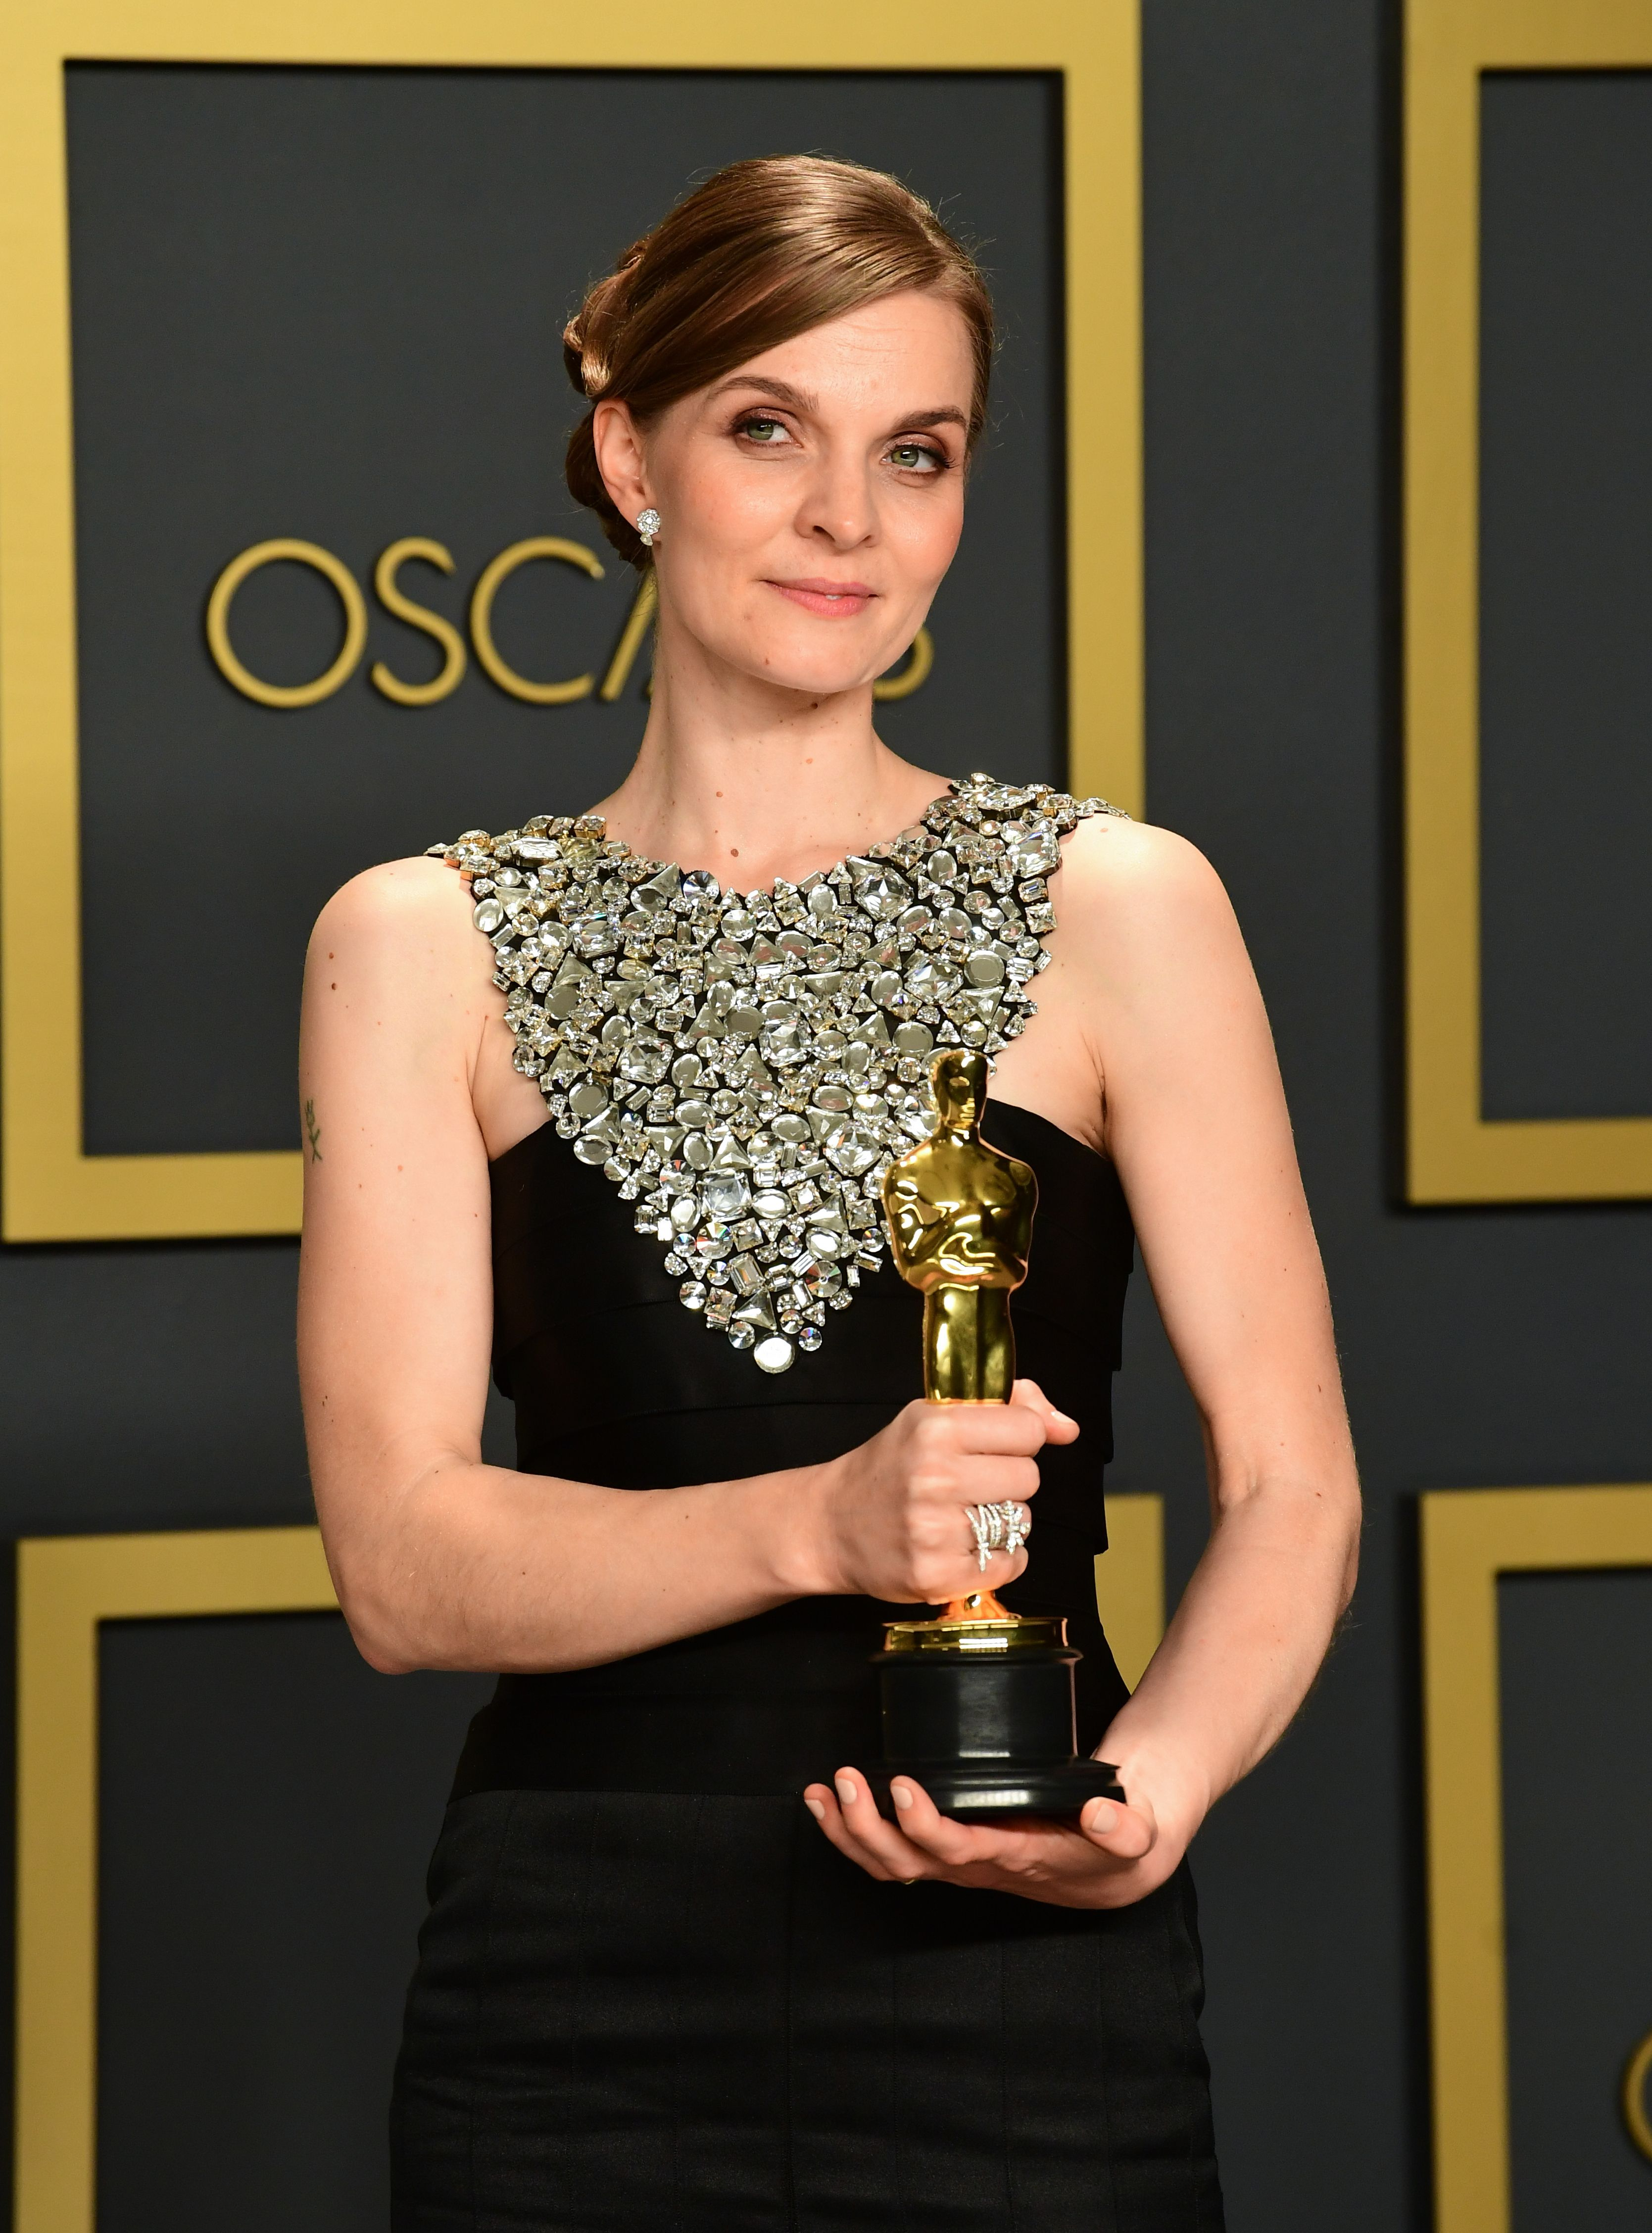 """Icelandic composer Hildur Gudnadottir poses in the press room with the Oscar for Best Original Score for """"Joker"""" during the 92nd Oscars at the Dolby Theater in Hollywood, California on February 9, 2020. (Photo by FREDERIC J. BROWN / AFP) (Photo by FREDERIC J. BROWN/AFP via Getty Images)"""